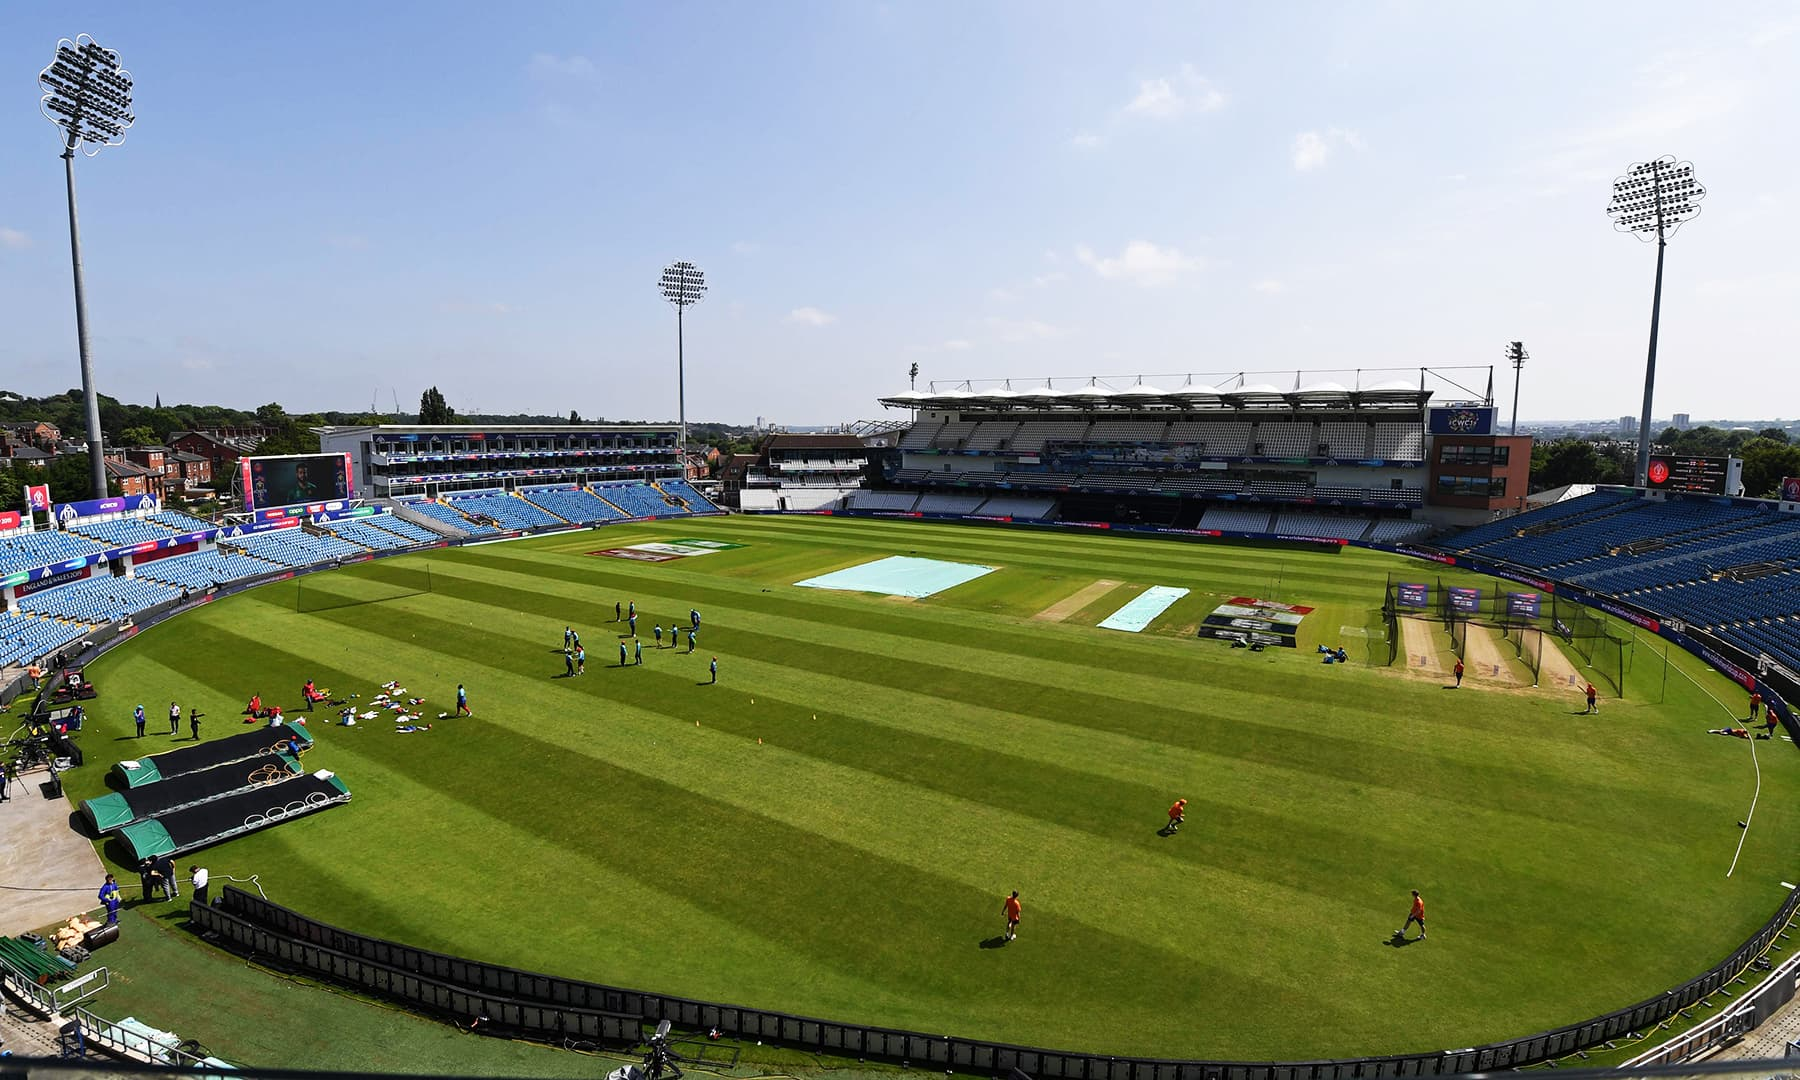 A view of the Headingly Stadium in Leeds on June 28 where Pakistan and Afghanistan team members held training sessions to prepare for their upcoming match against one another. — AFP